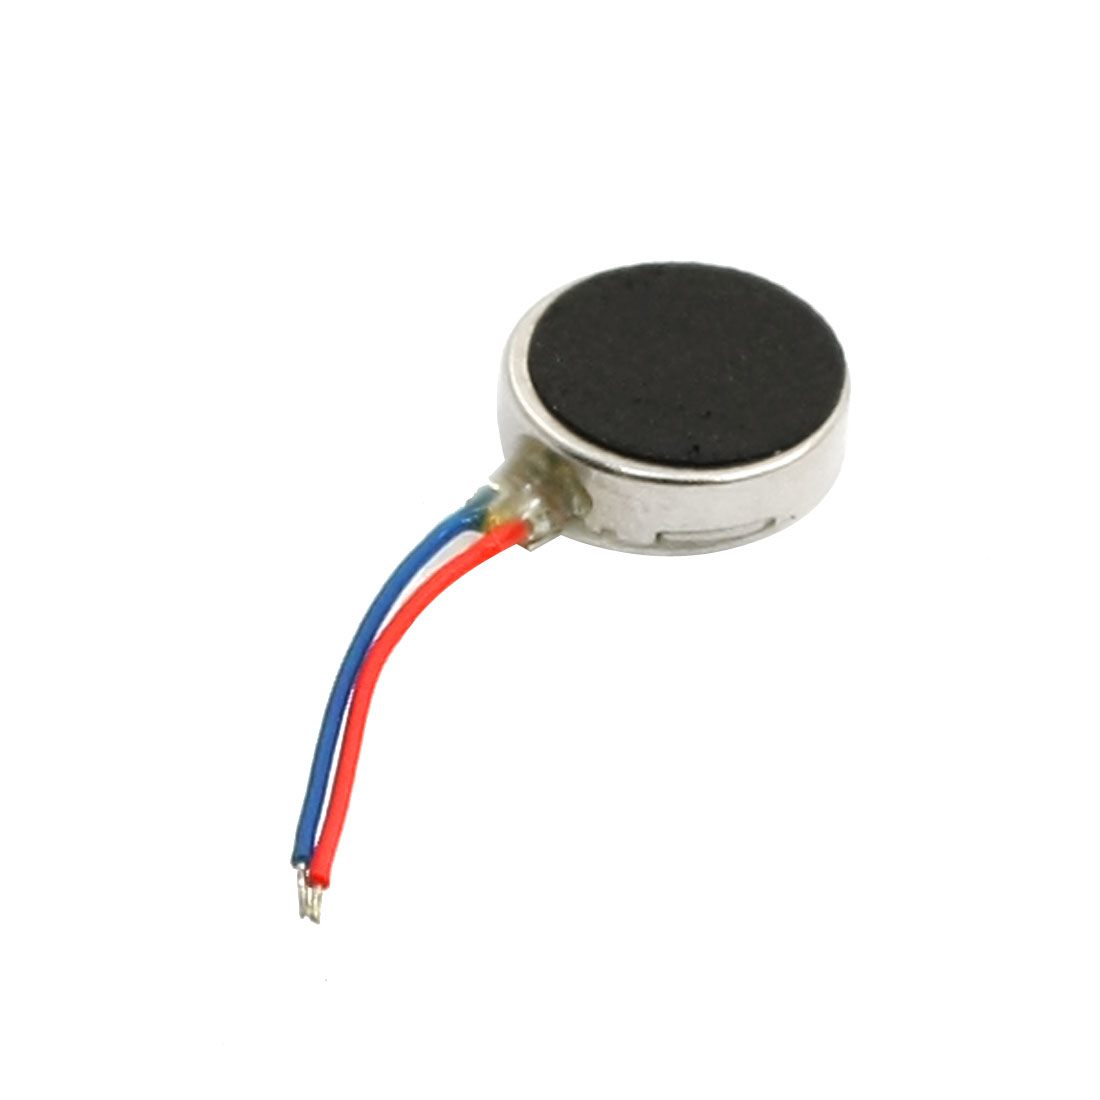 DC-3V-70mA-11000RPM-Mobile-Phone-Coin-Flat-Vibrating-Vibration-Motor